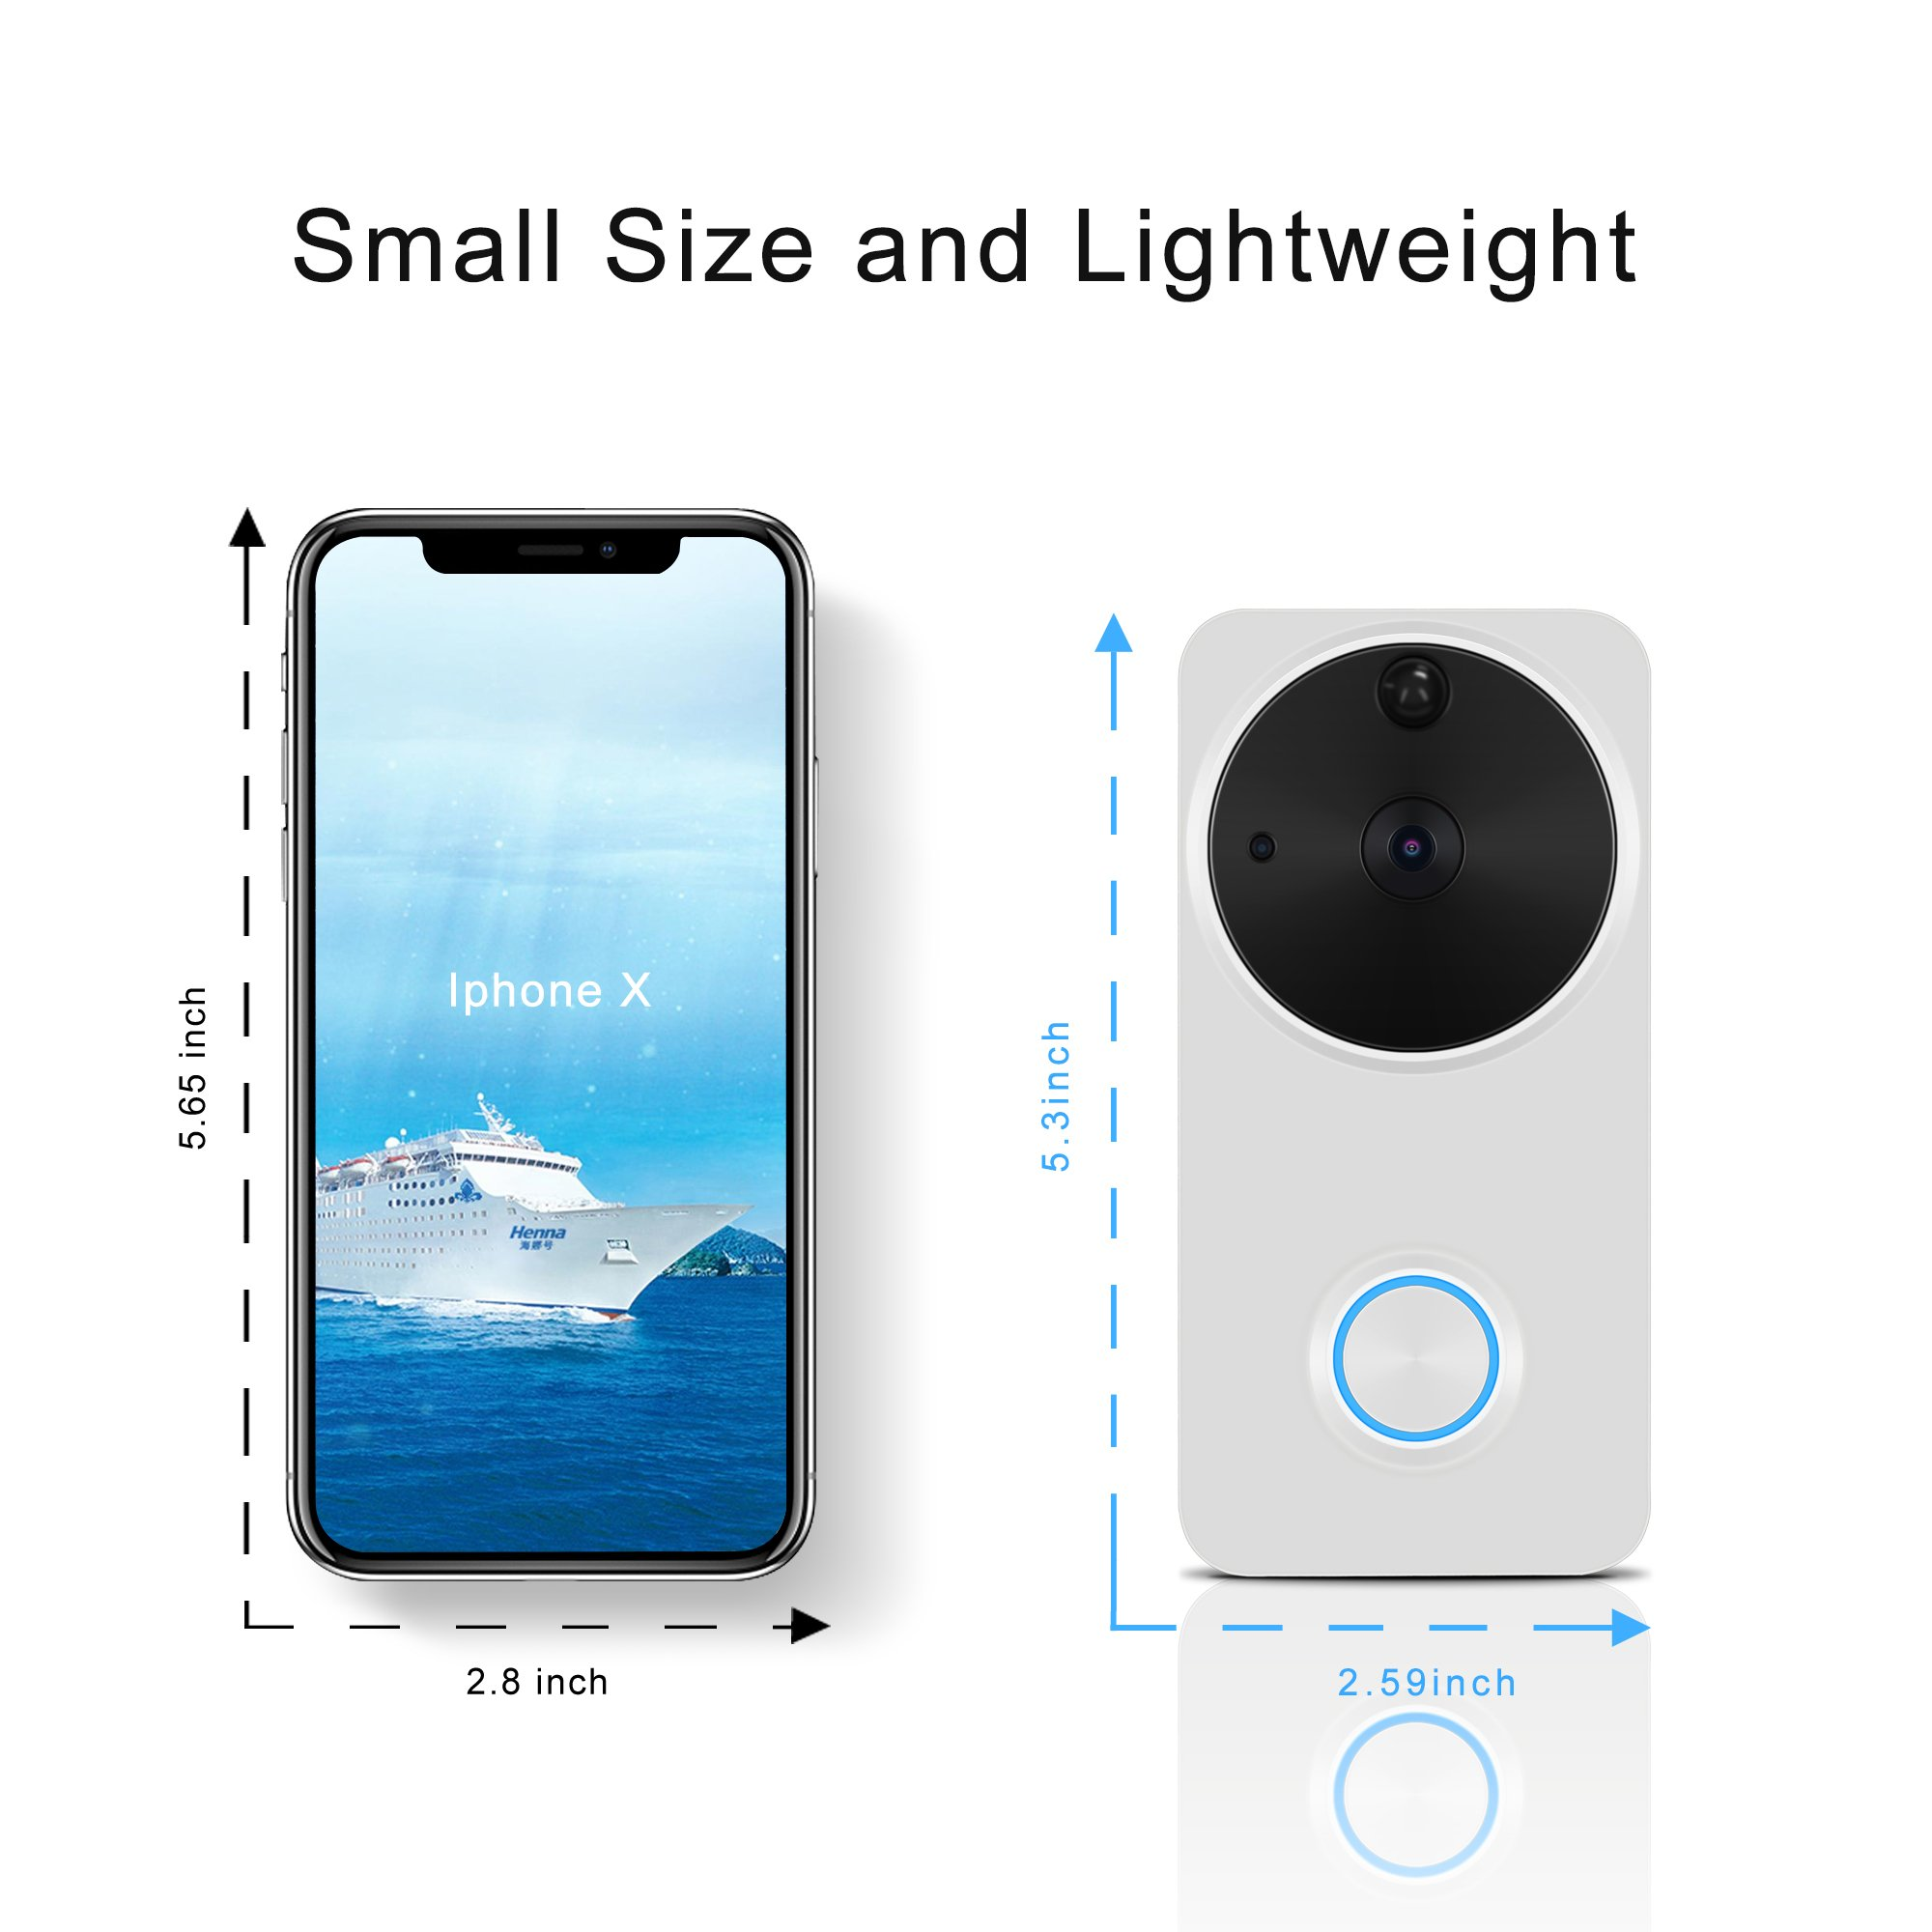 Video Doorbell Wireless - HEIHEI WiFi Smart Door Bell Kit, 720P HD Video, 2-Way Audio, Motion Detection, IR Night Version, Waterproof Home Camera W/2-Battery Built in 16G Card for IOS/Android - White by HEIHEI (Image #4)